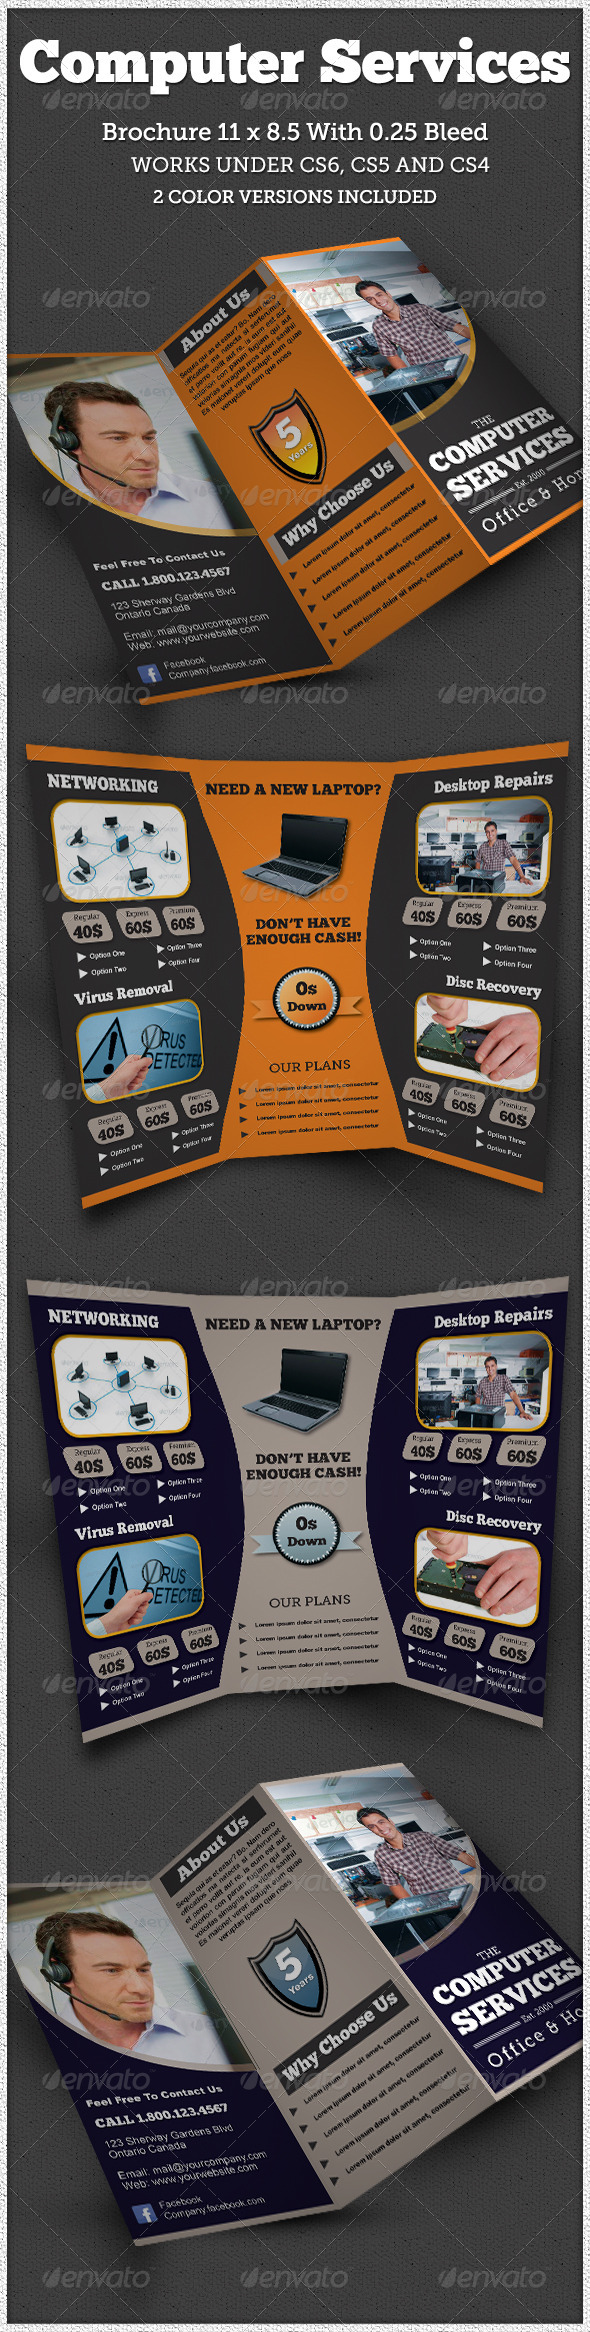 GraphicRiver Computer Service Trifold Brochure Indesign 6547792